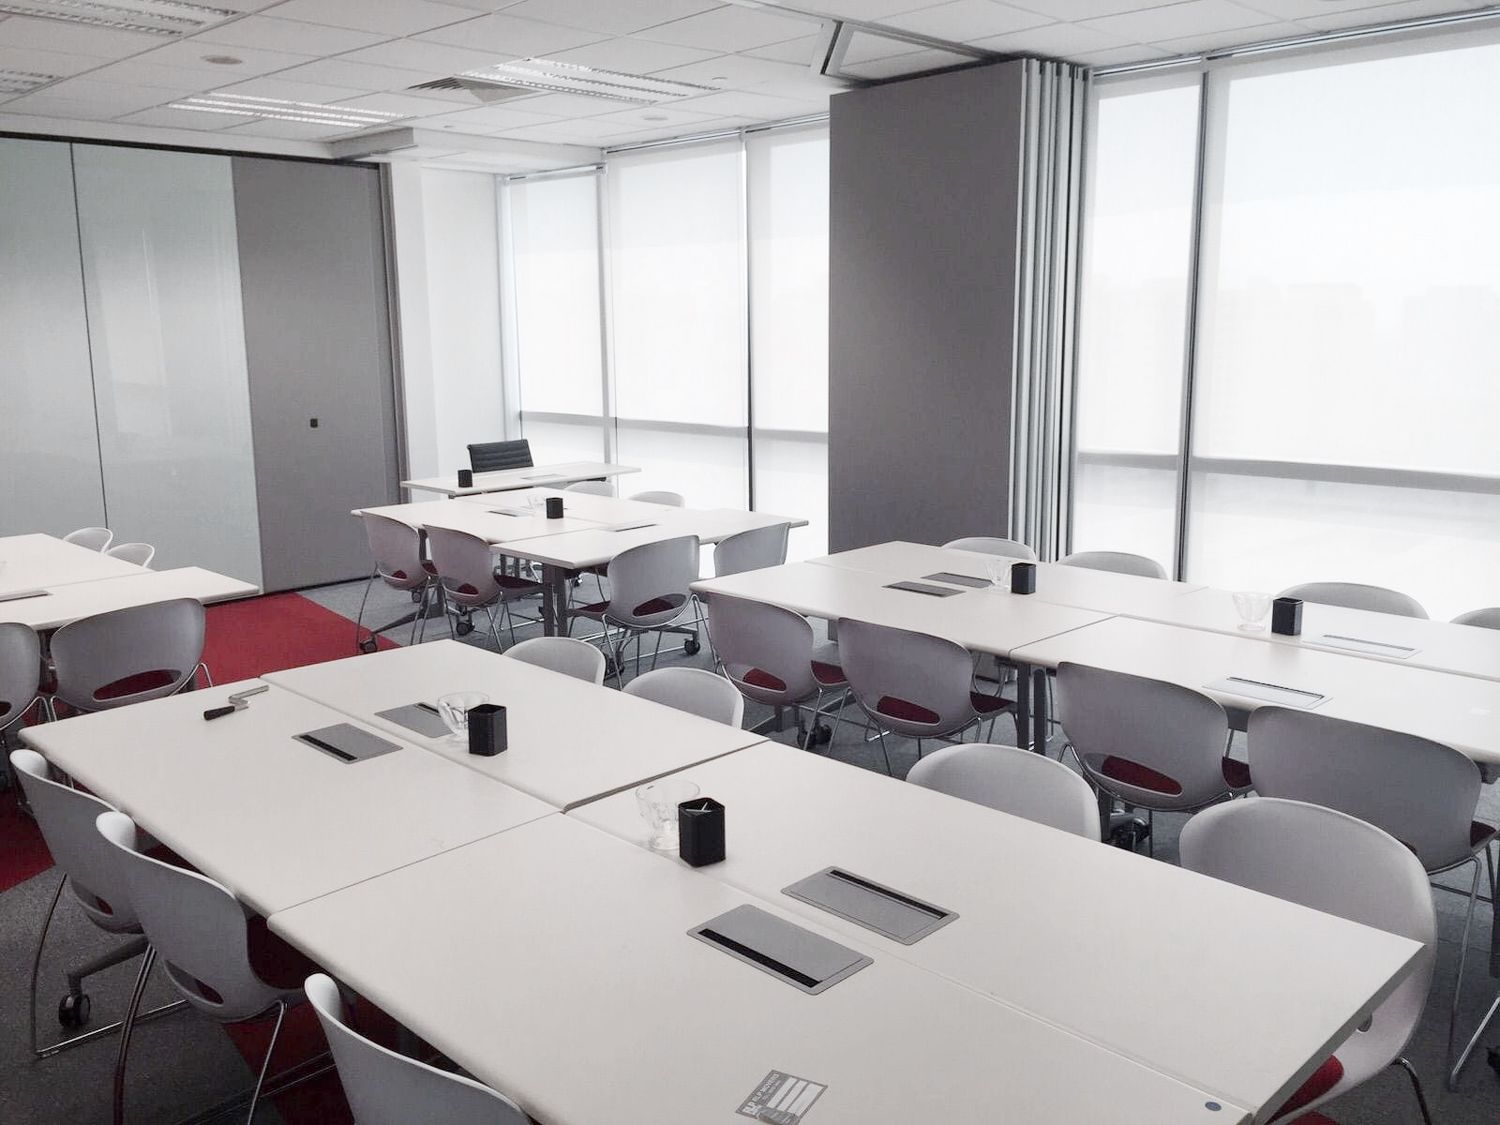 EdgeProp Singapore: The training space comprises two adjacent units with a total floor area of 2,680 sq ft